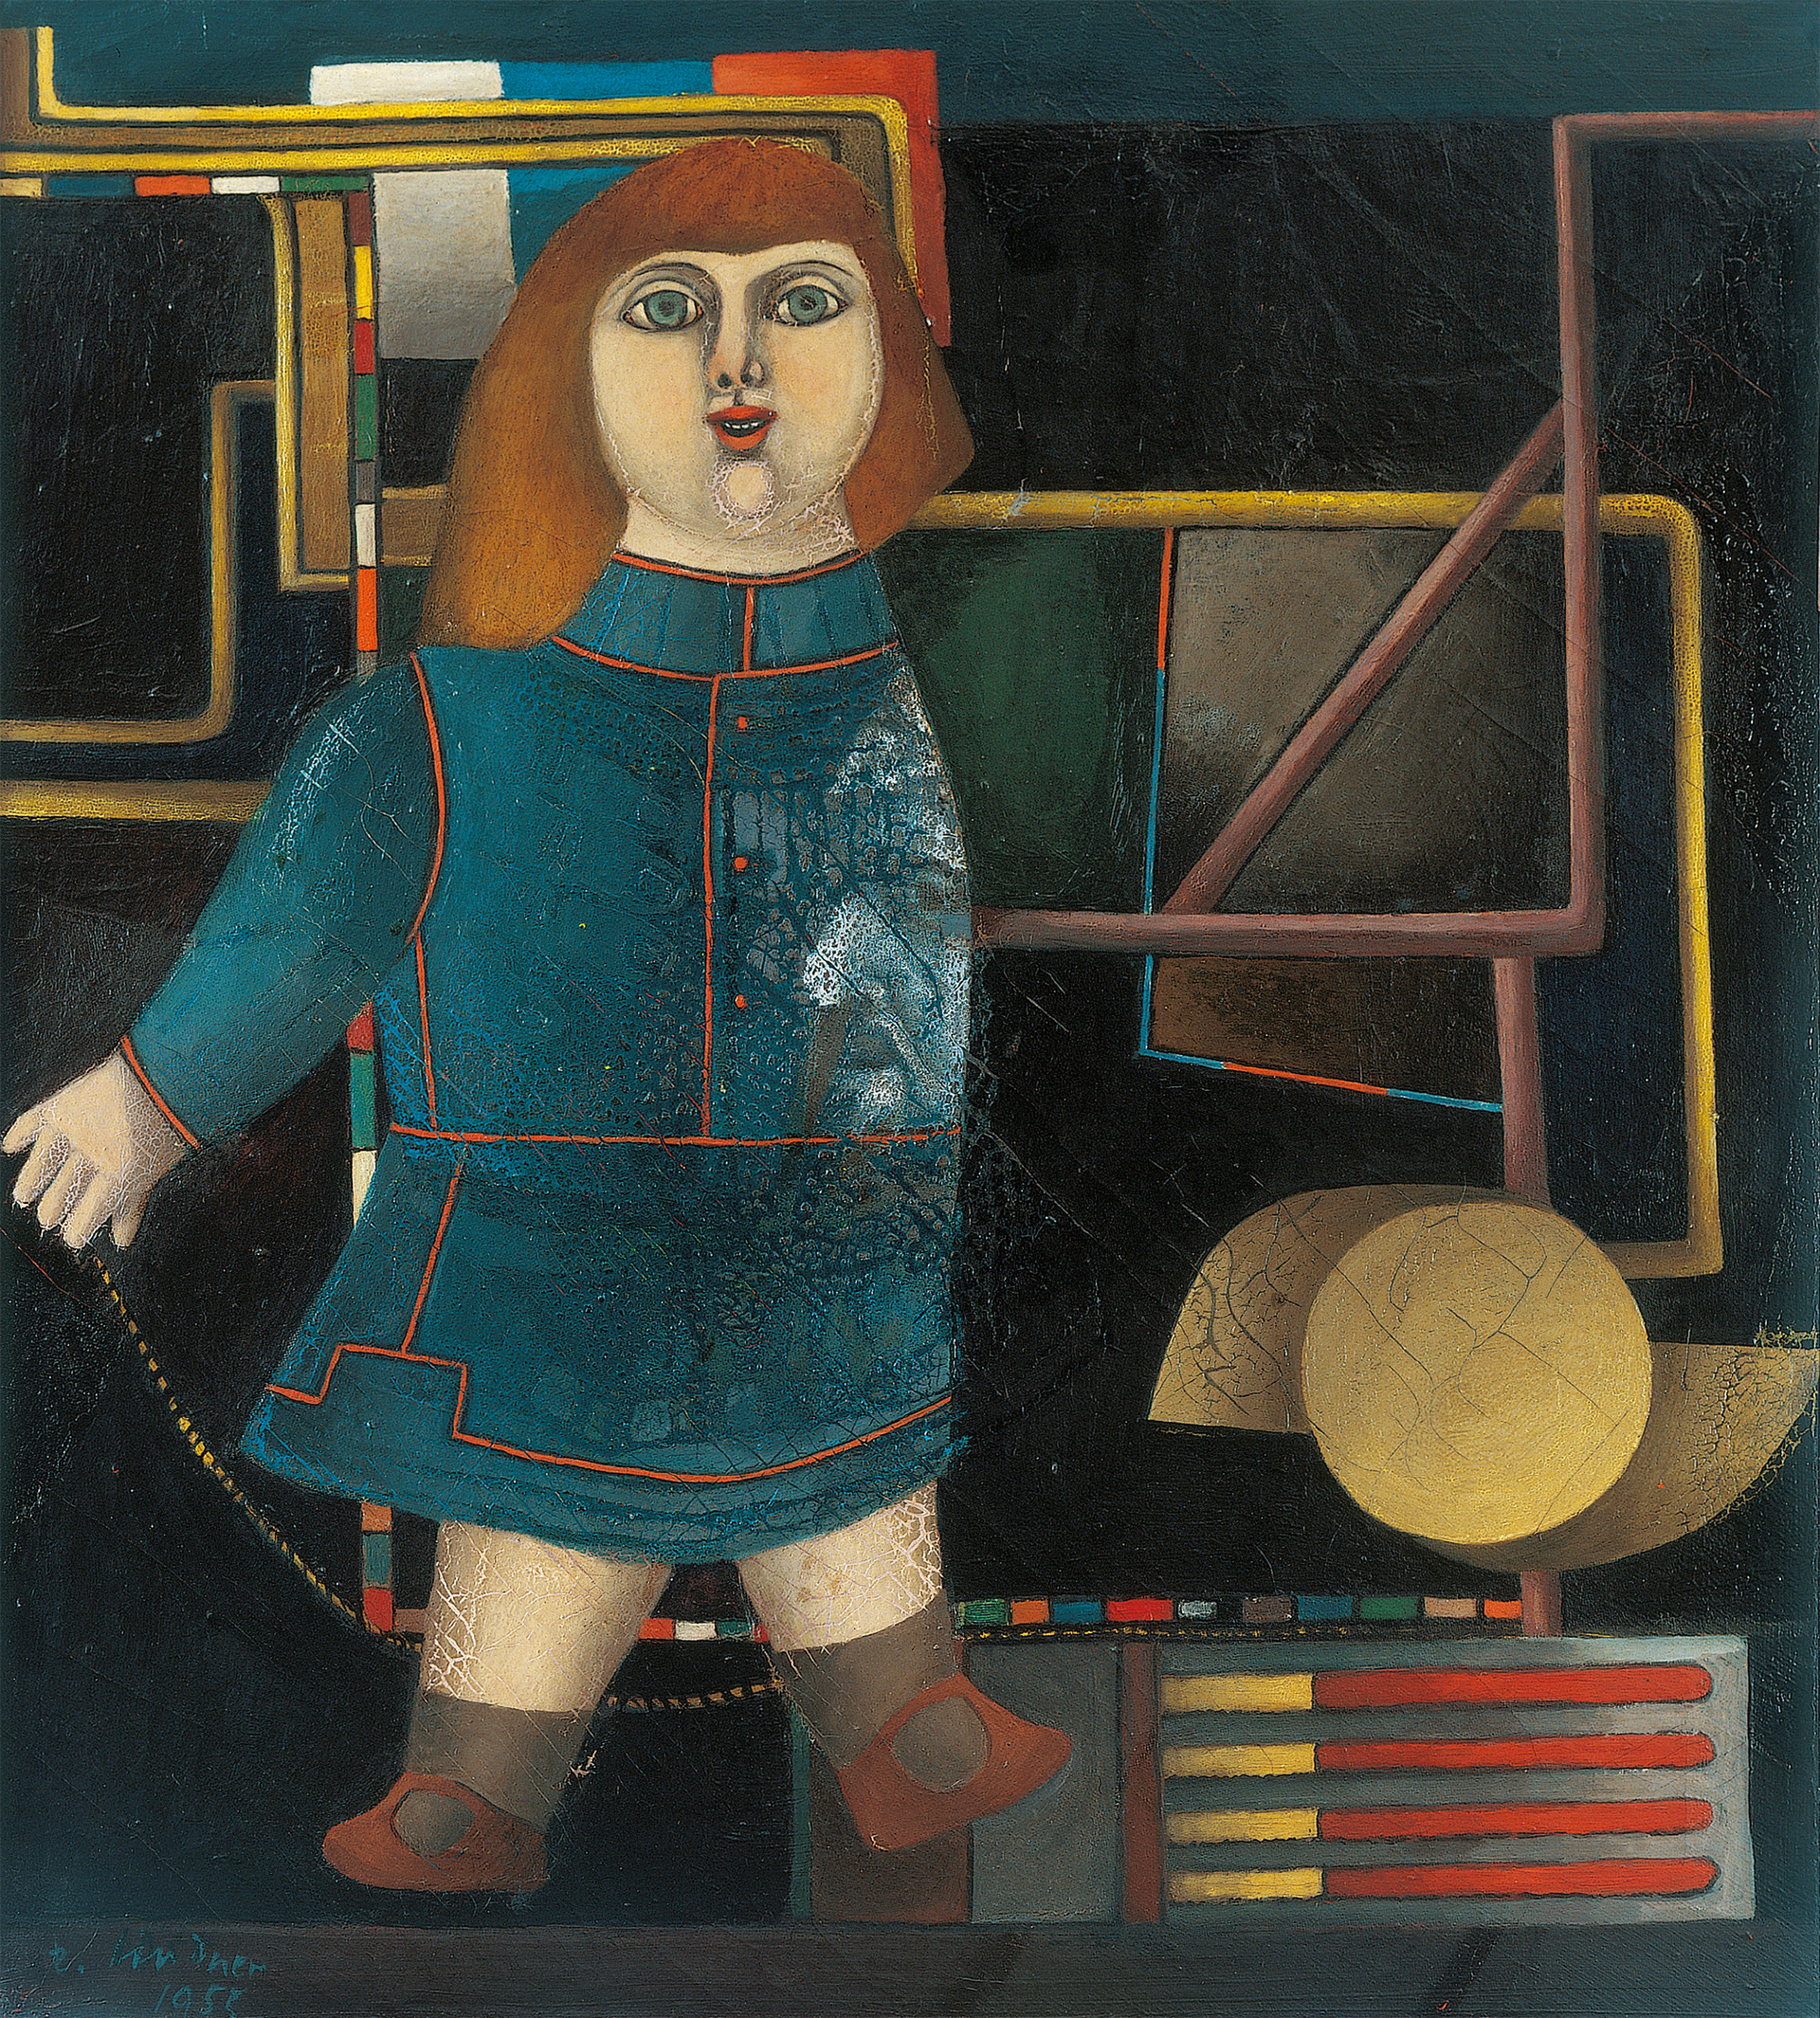 Untitled (Wunderkind, Doll), 1955 grand format